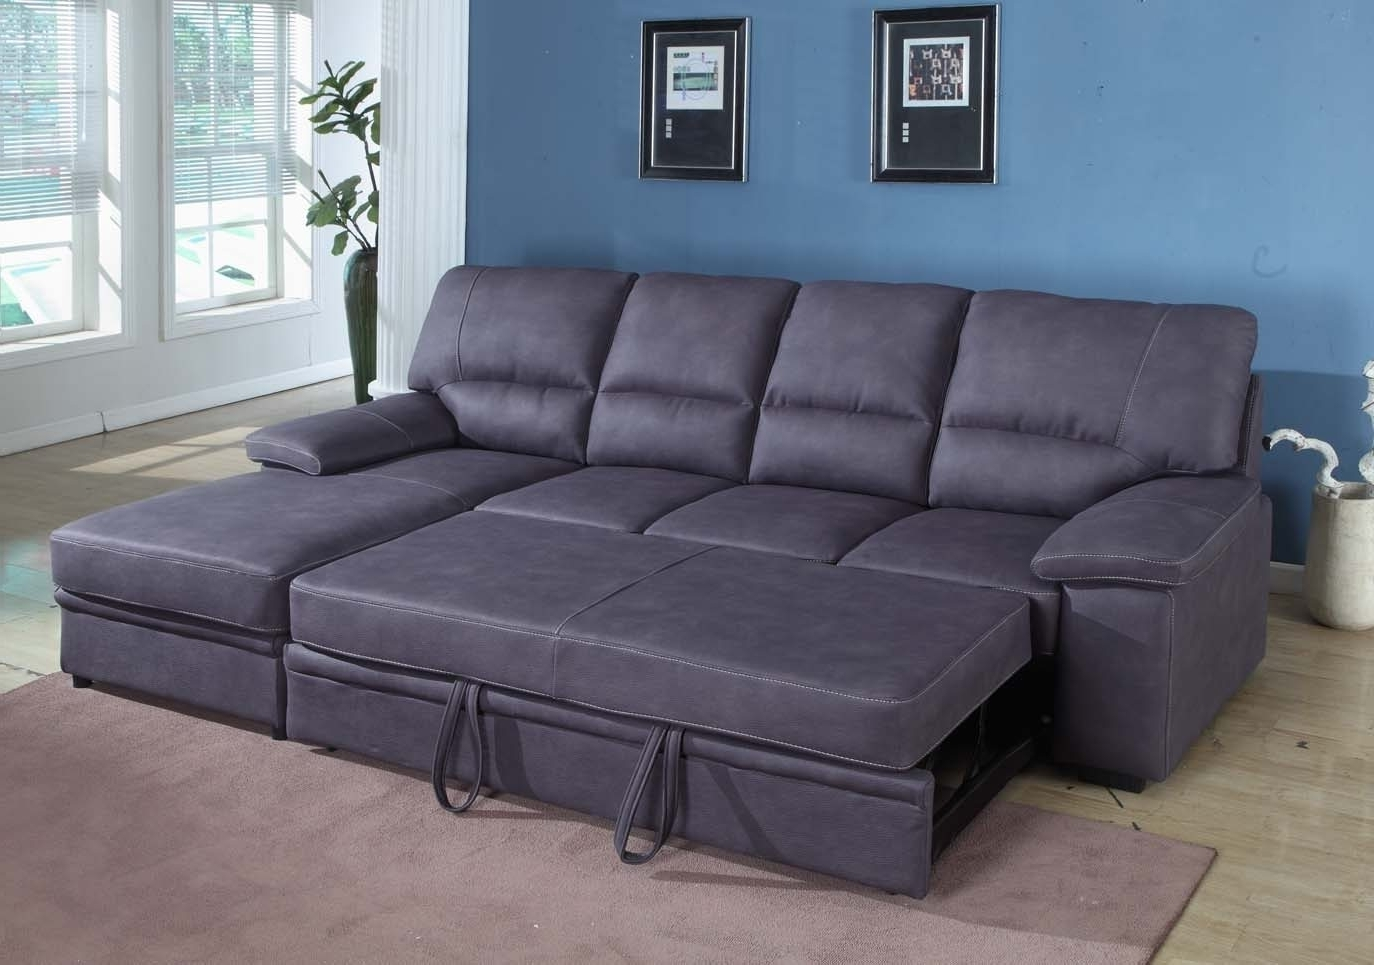 Most Recently Released Brilliant Sectional Sleeper Sofa With Chaise Cool Living Room For Sleeper Sofas With Chaise And Storage (View 4 of 15)